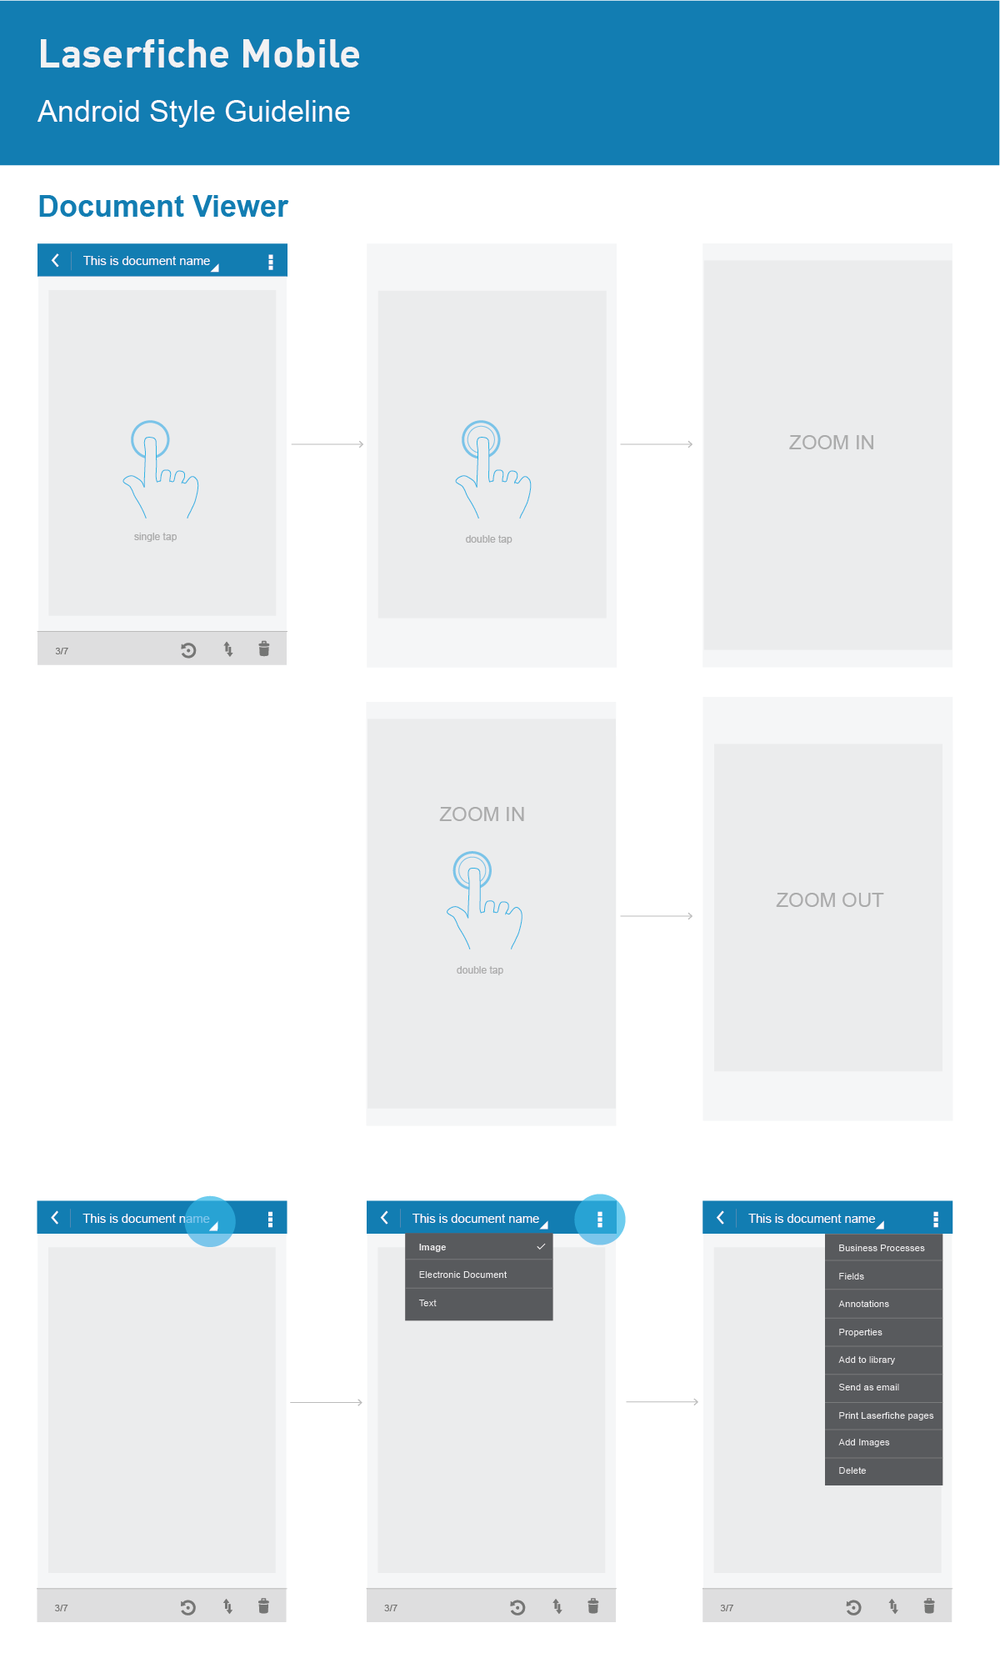 styleguide-02.png